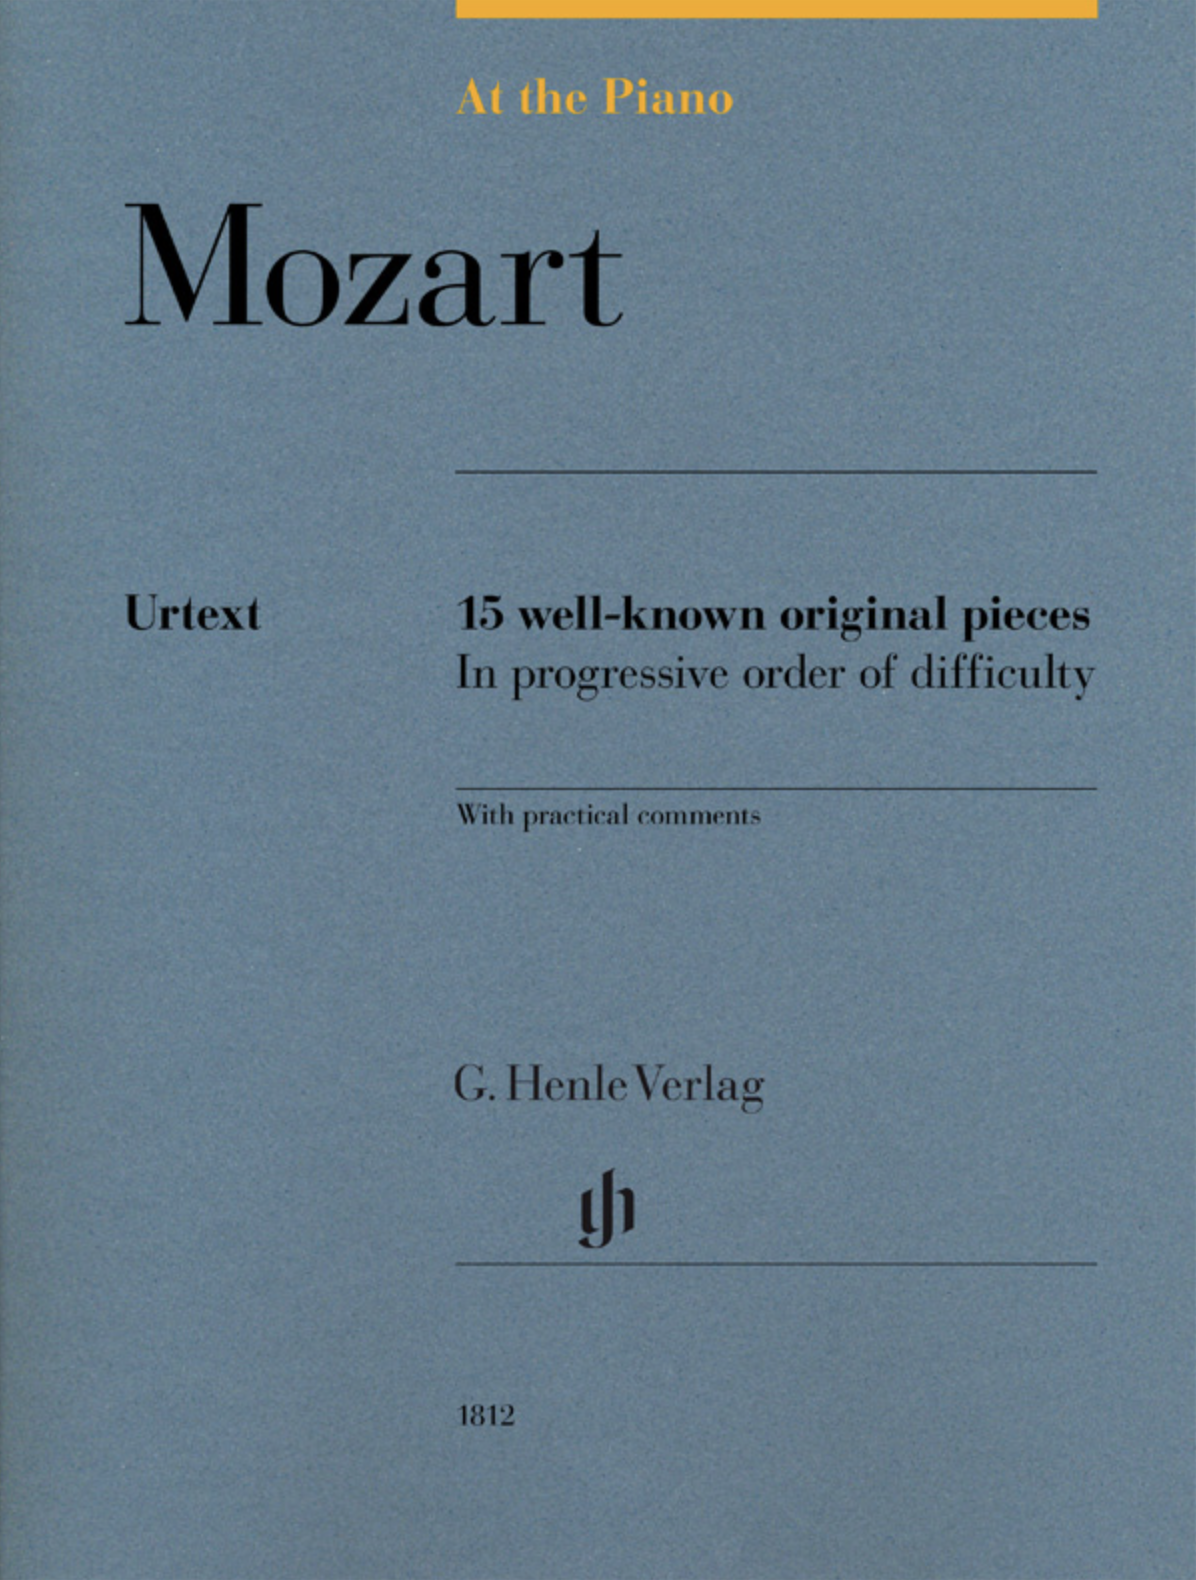 Mozart At the Piano Henle Verlag cover